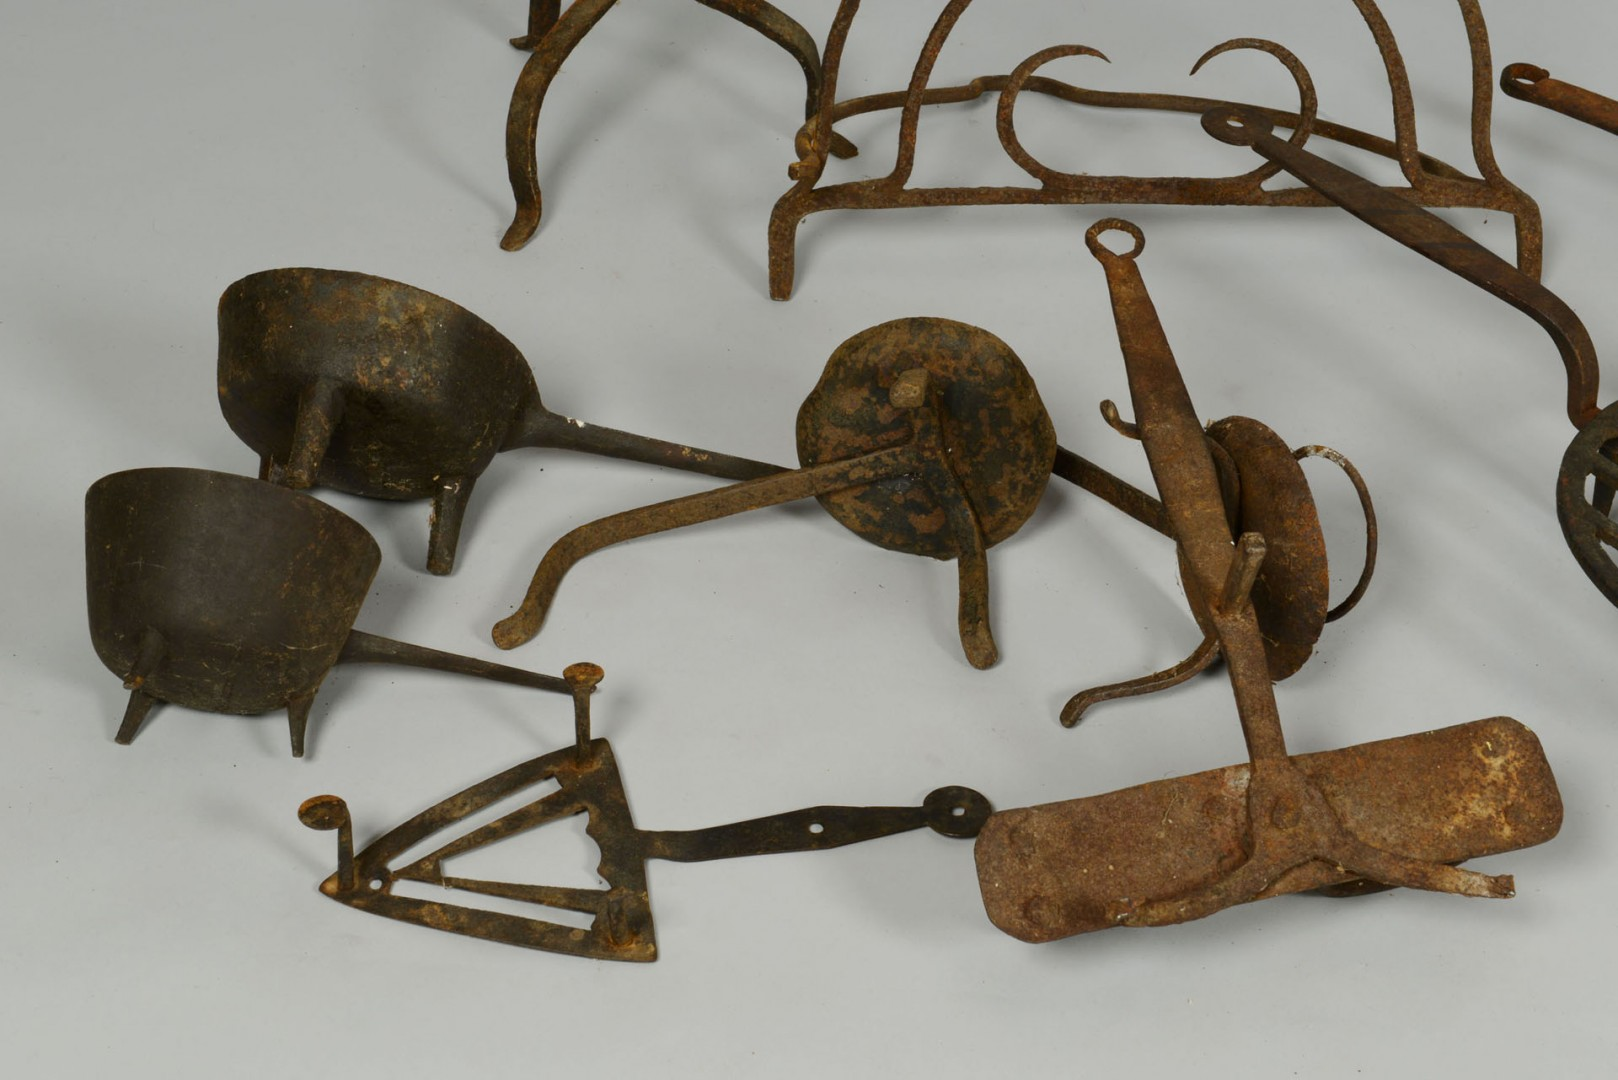 Grouping of early wrought iron hearth items, 10